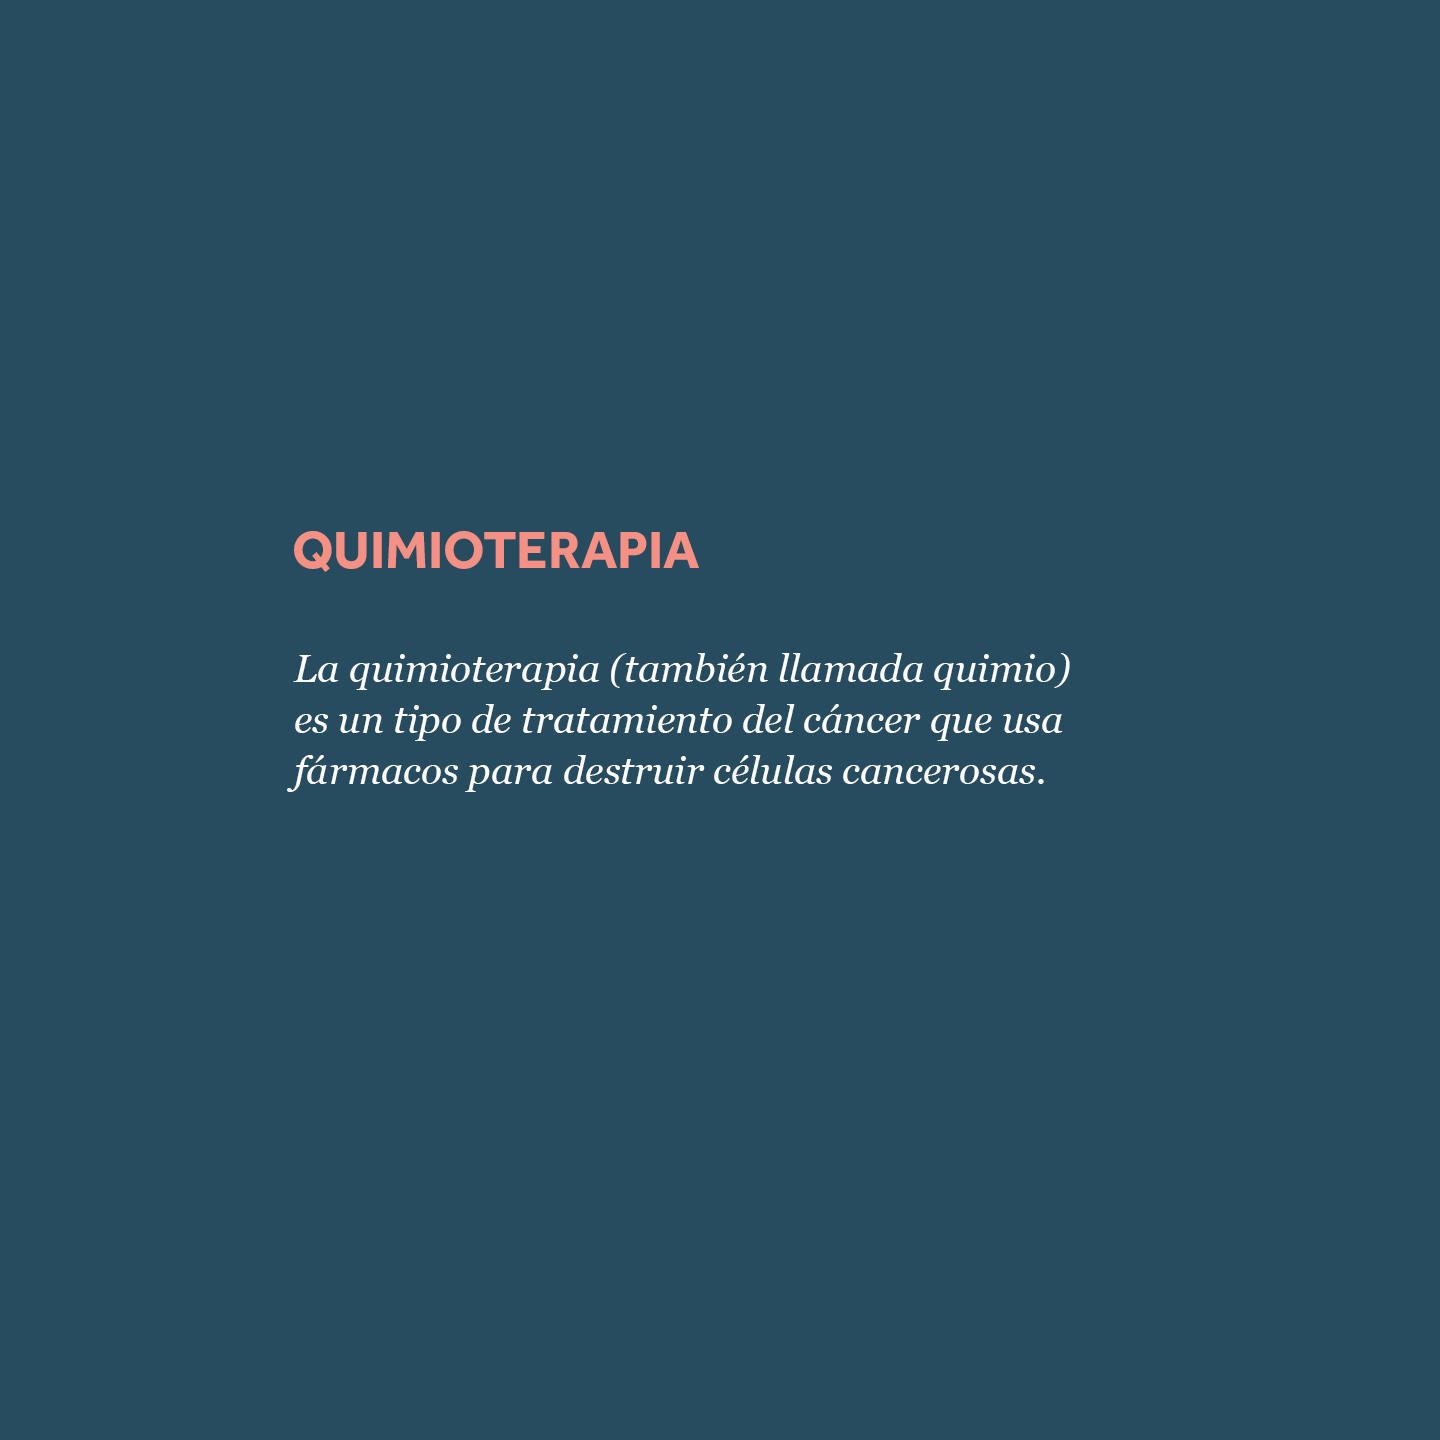 quimioterapia-omar-onco